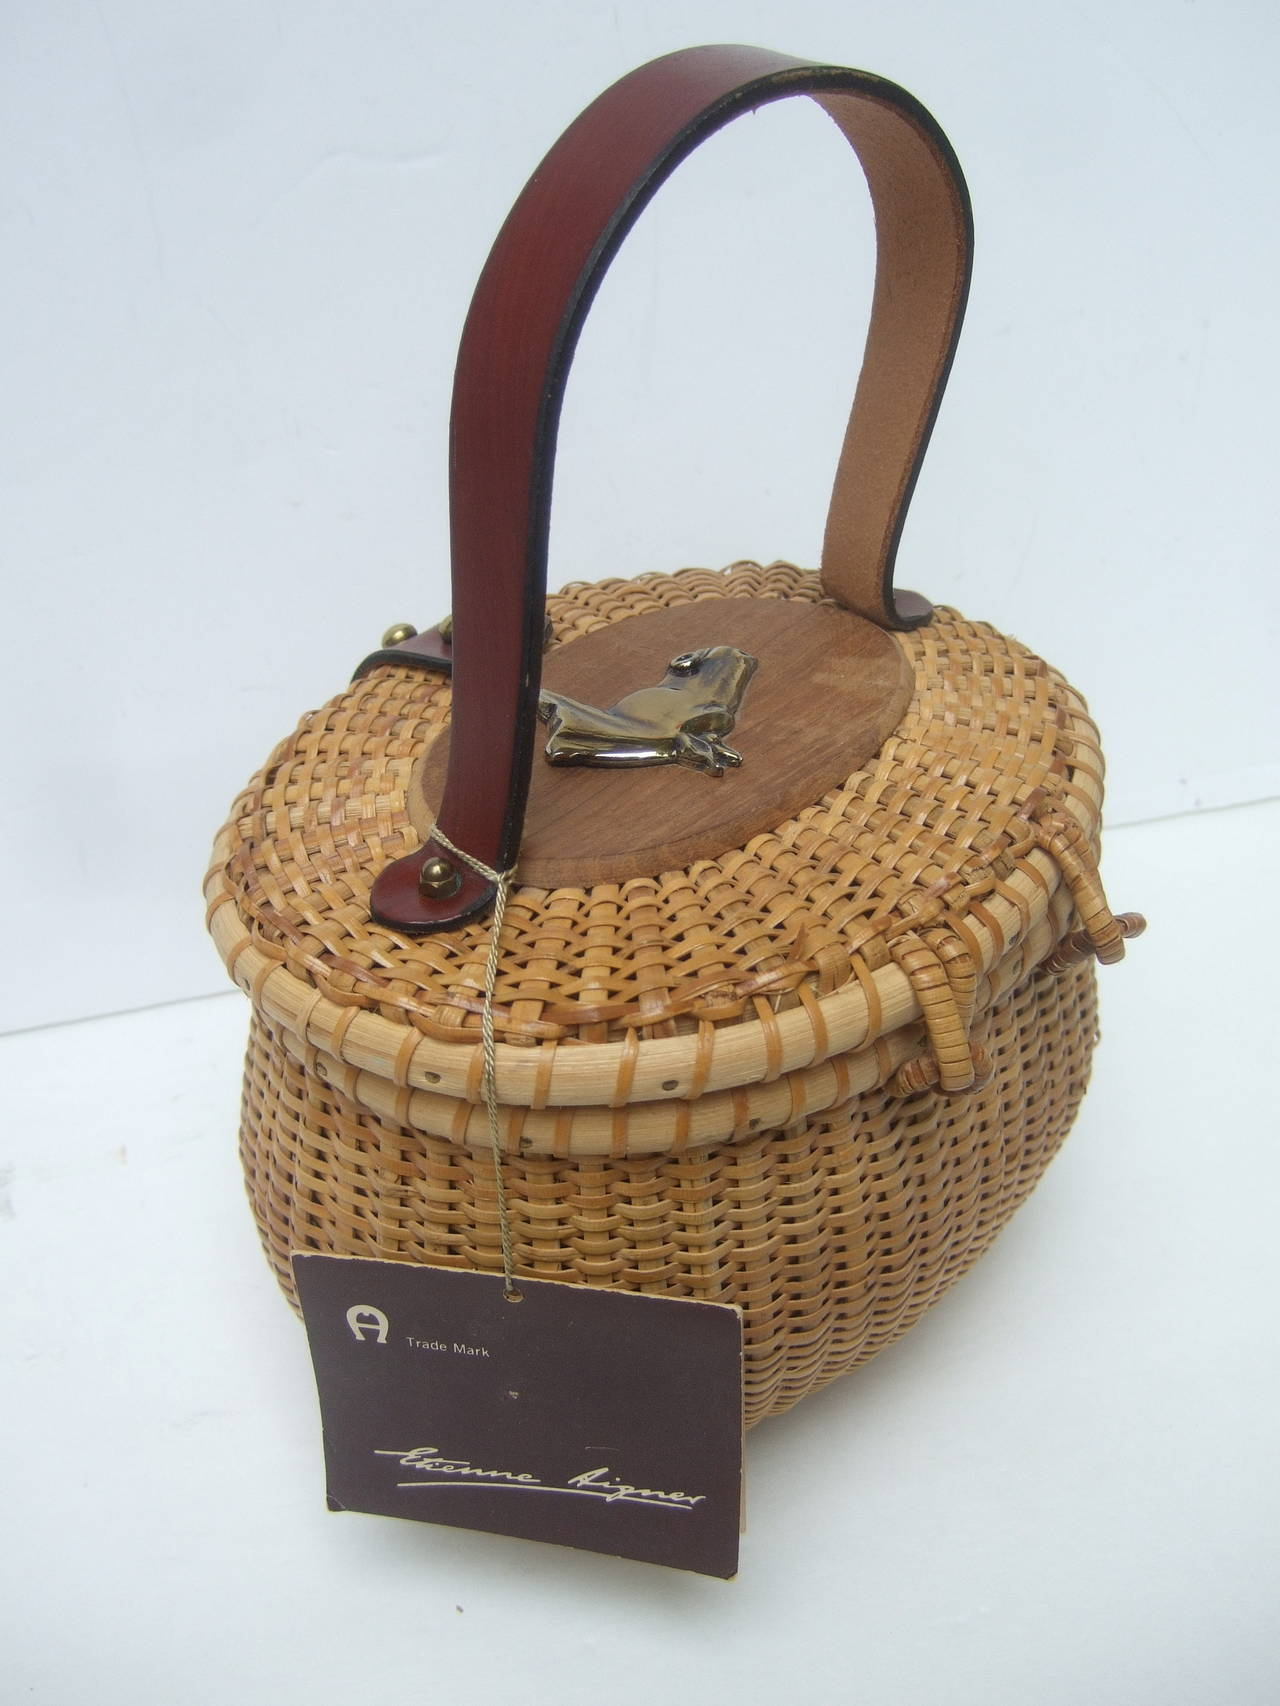 Oval Wicker Basket Equestrian Theme Handbag c 1970s For Sale 2